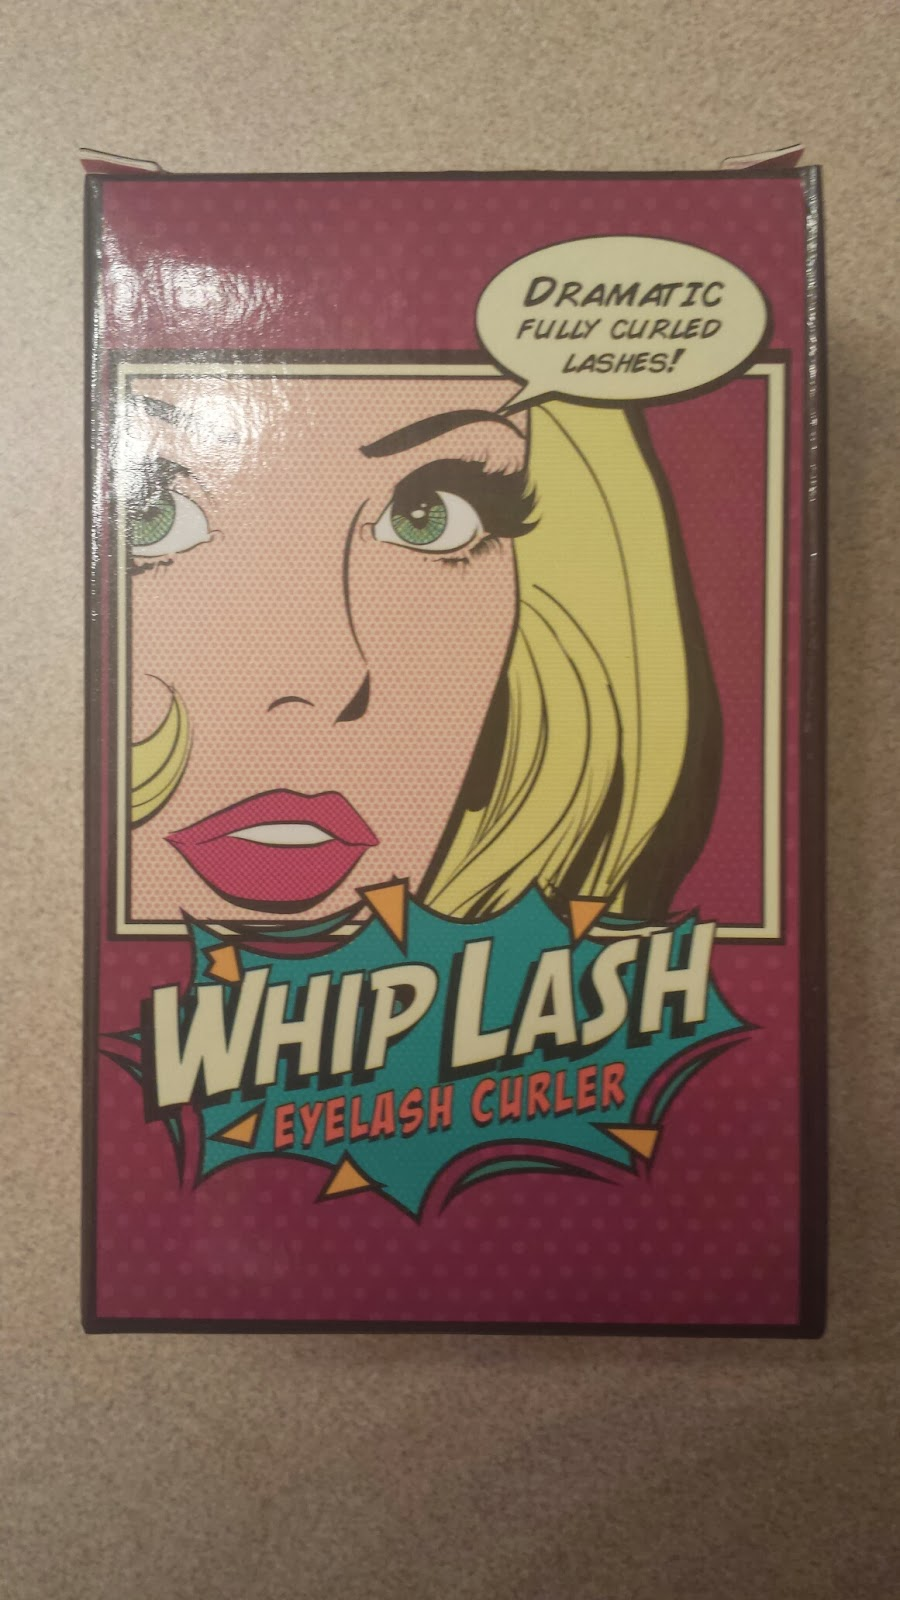 No Pinch Eyelash Curler- Whip Lash Review